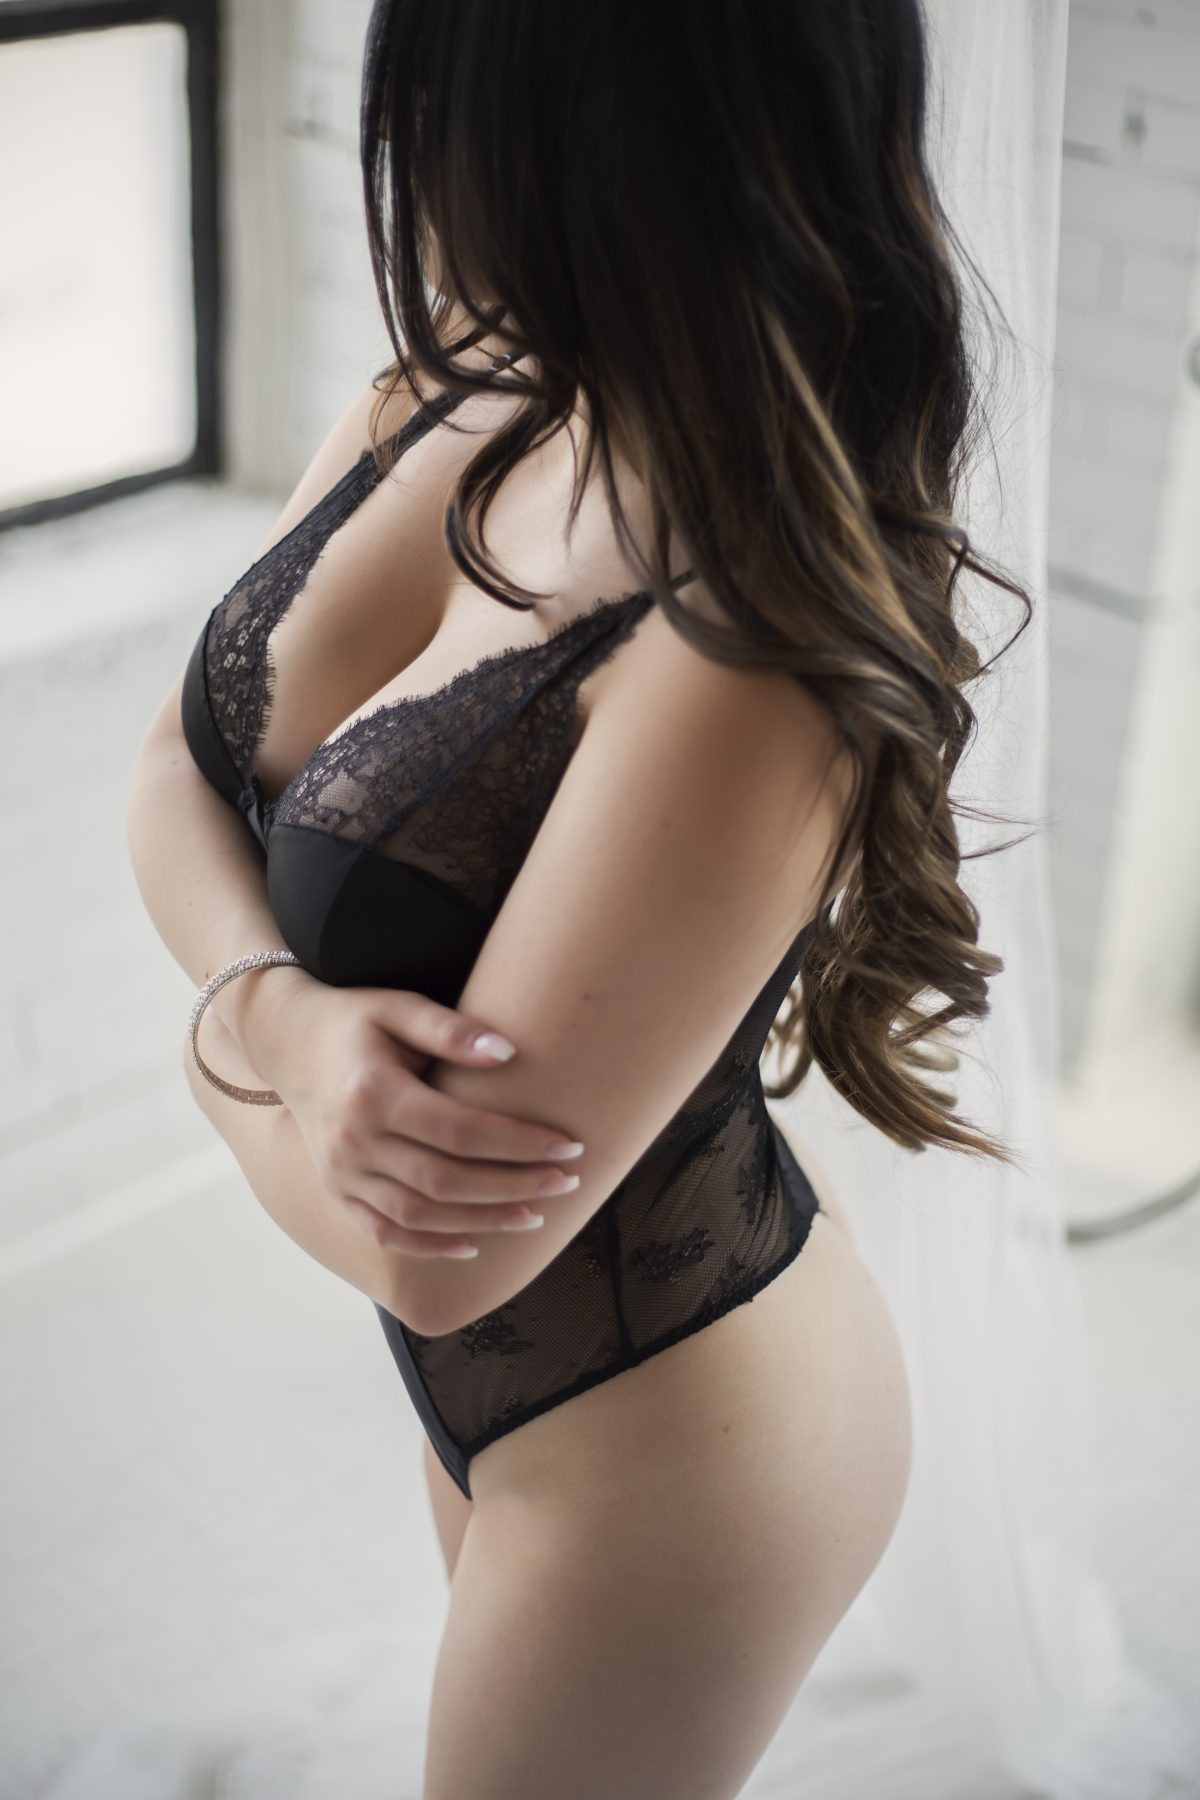 Toronto escorts companion upscale Noelle Disability-friendly Non-smoking Young Curvy Petite Breasts Natural Brunette European Tattoos None